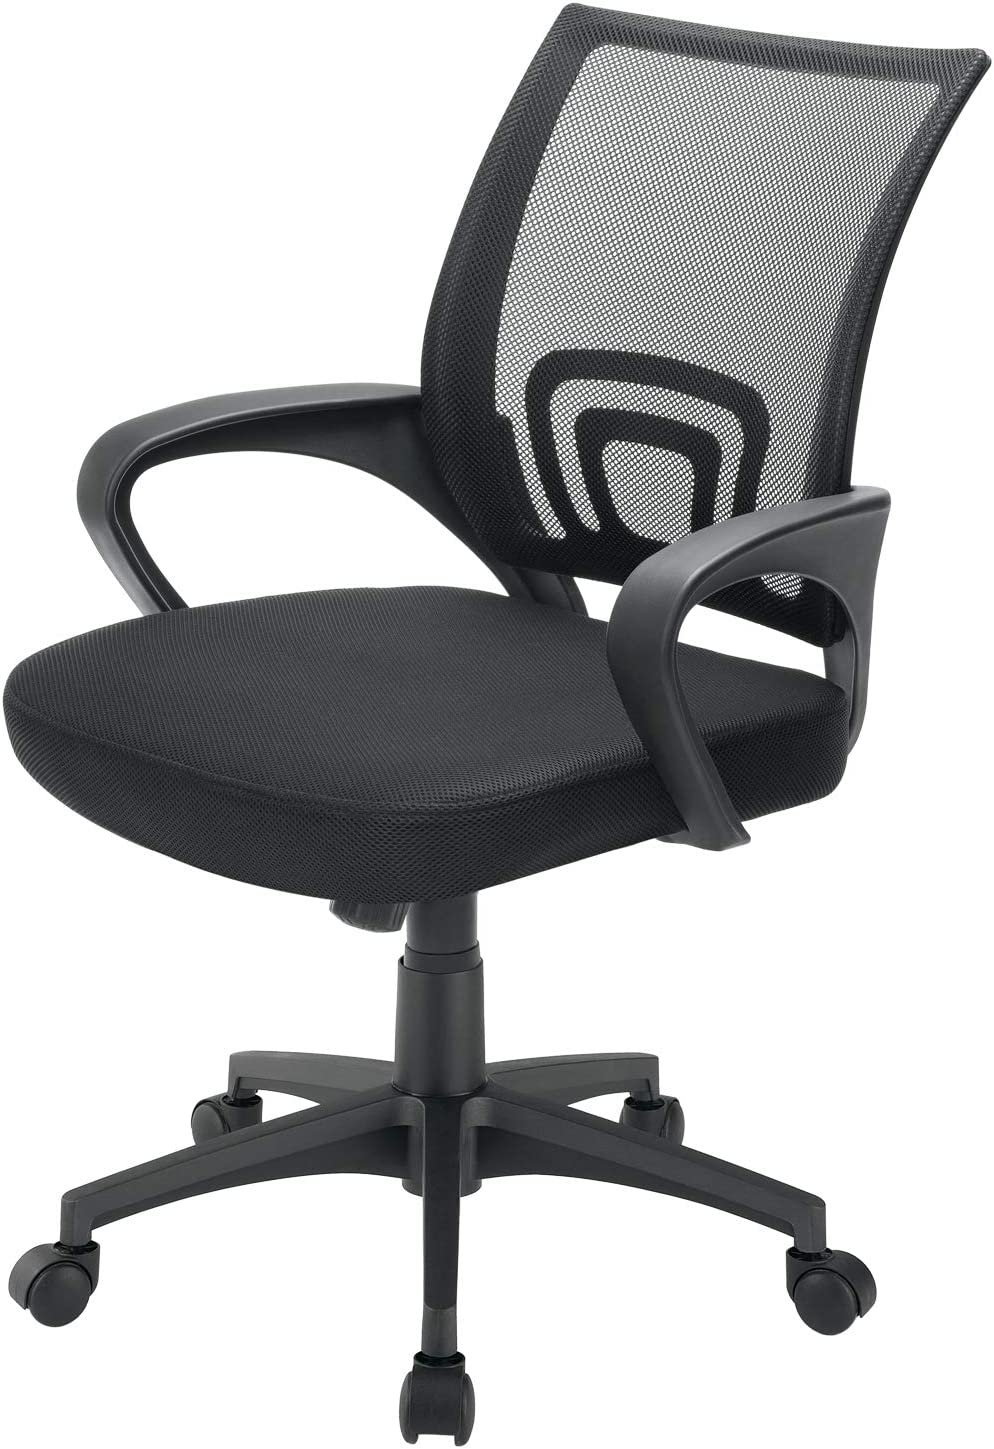 BOSSIN Office Chair Mesh Desk Chair Ergonomic Computer Chair with Lumbar Support Modern Executive Adjustable Chair Rolling Swivel Chairs for Women Men,Black (Black)